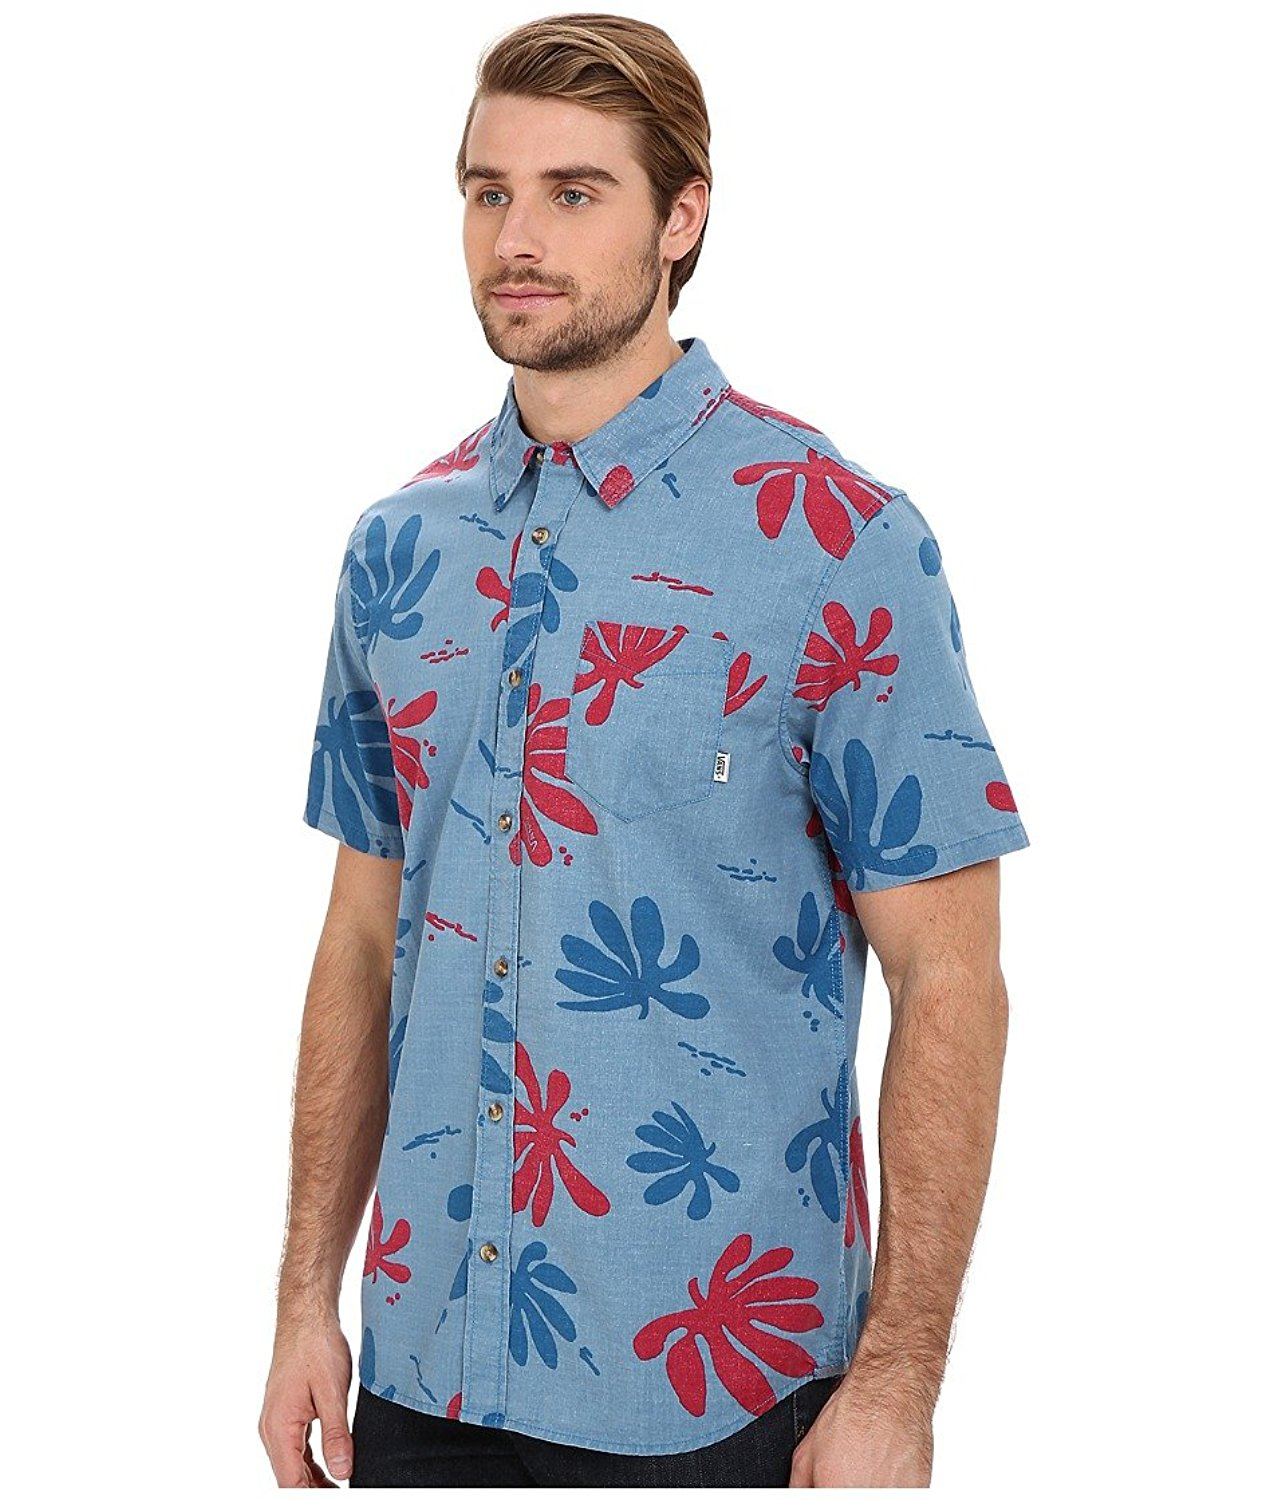 653fd73c58 Vans Men s Joel Tudor Montauk Hawaiian Shirt-Blue Red-Small ...